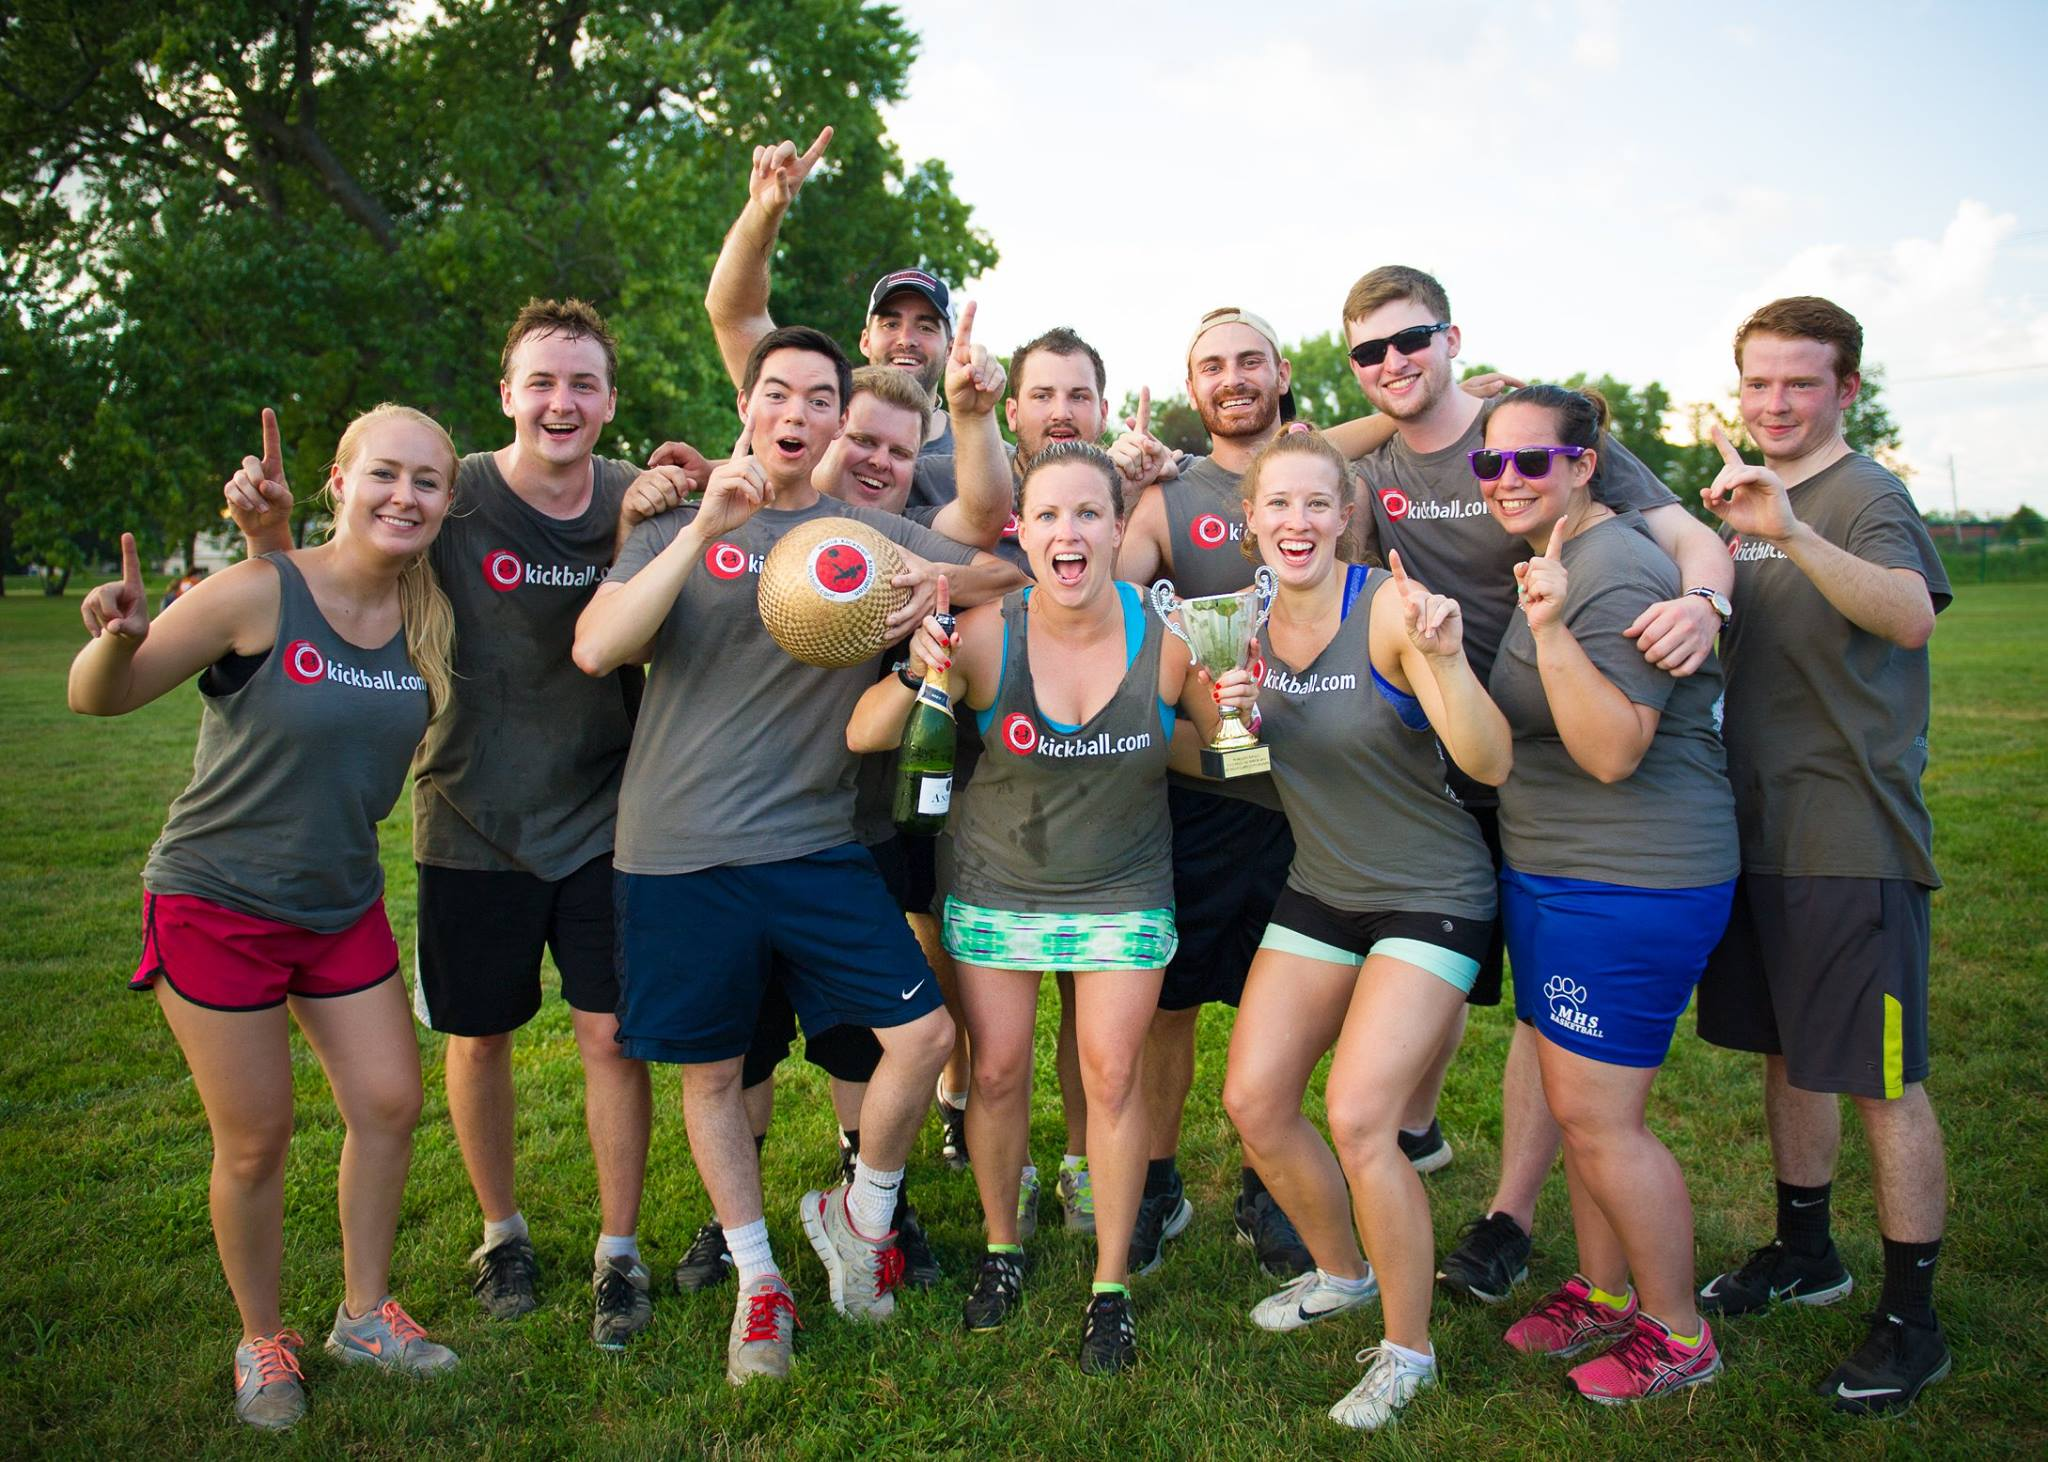 Kickball team celebrating